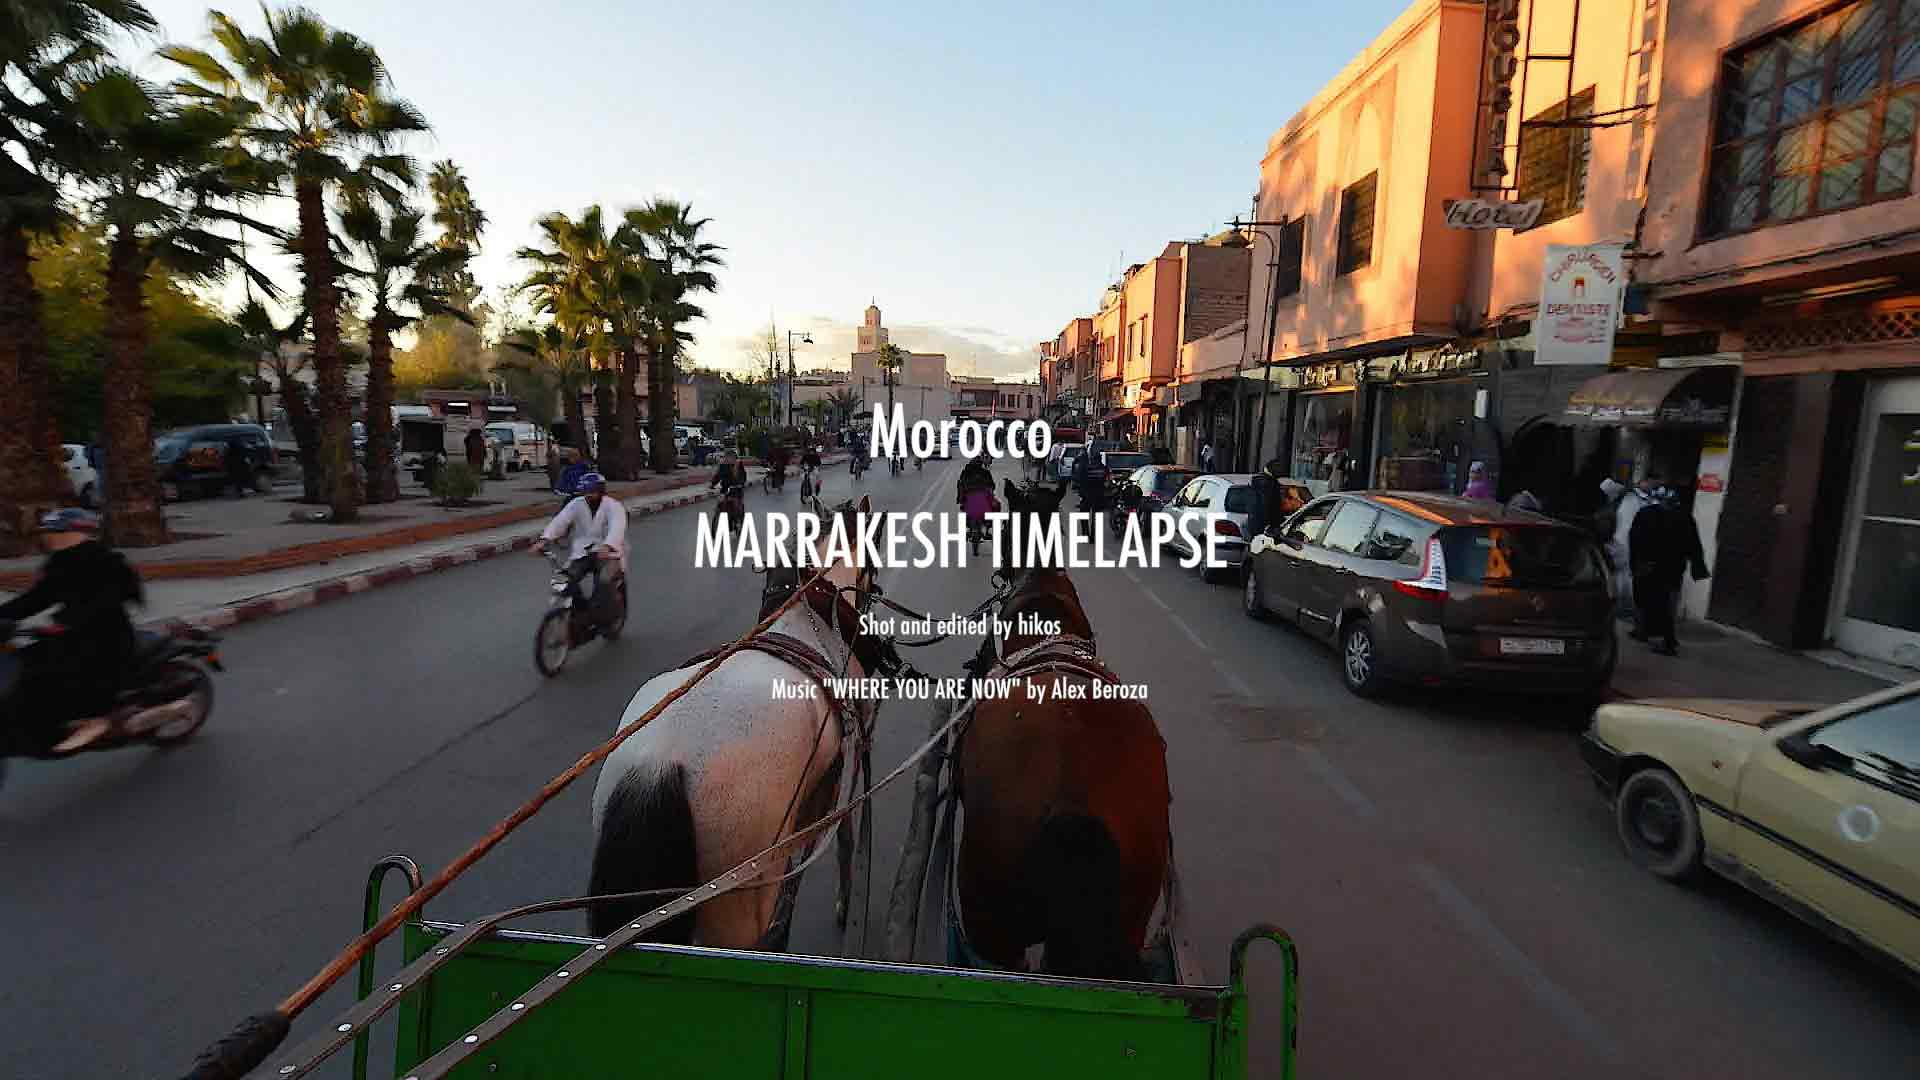 Morocco-Timelapse-Featured-Image